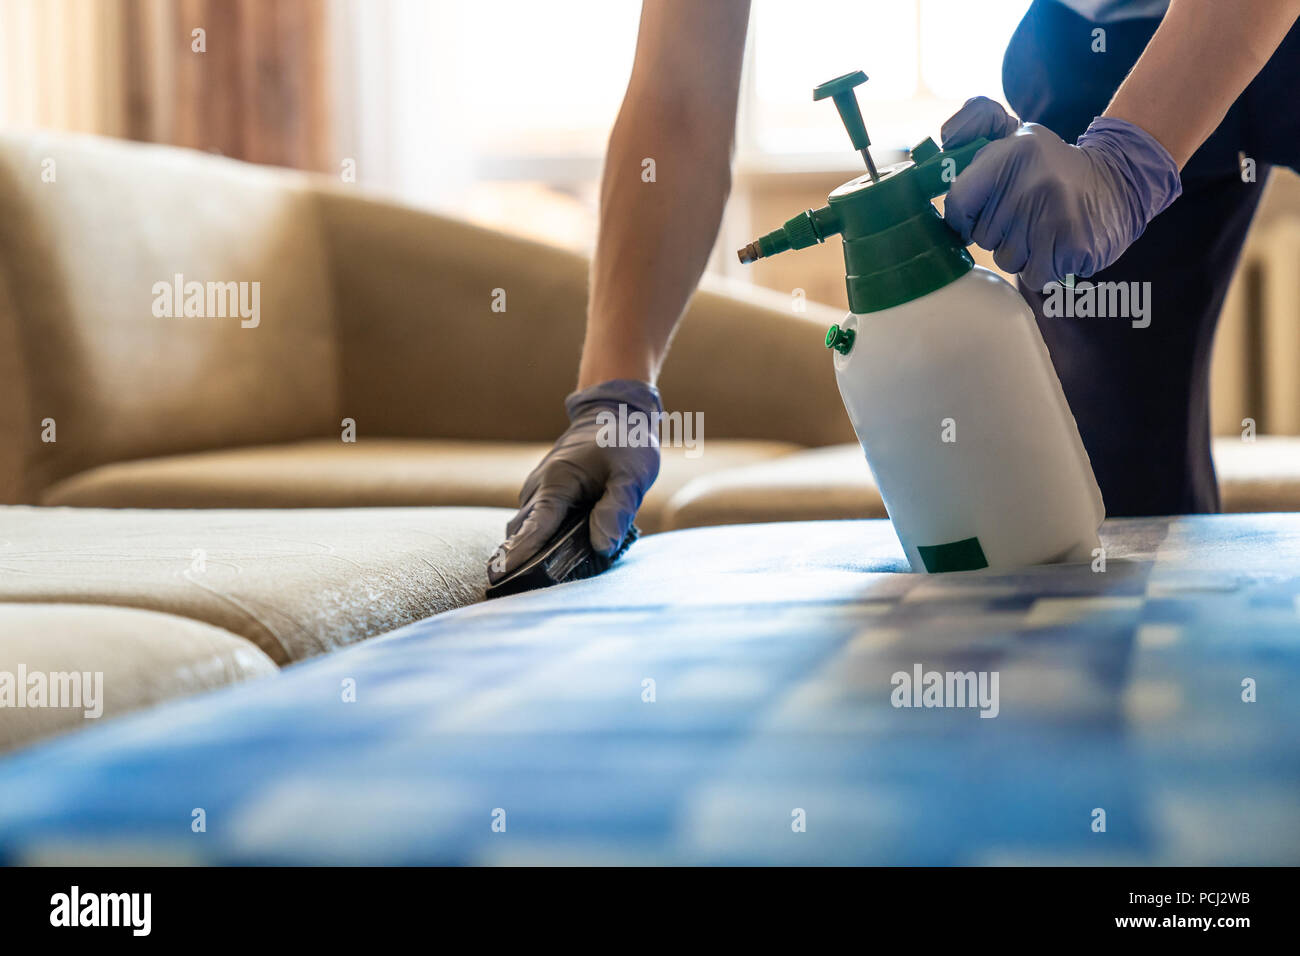 Closeup of upholstered Sofa chemical cleaning - Stock Image